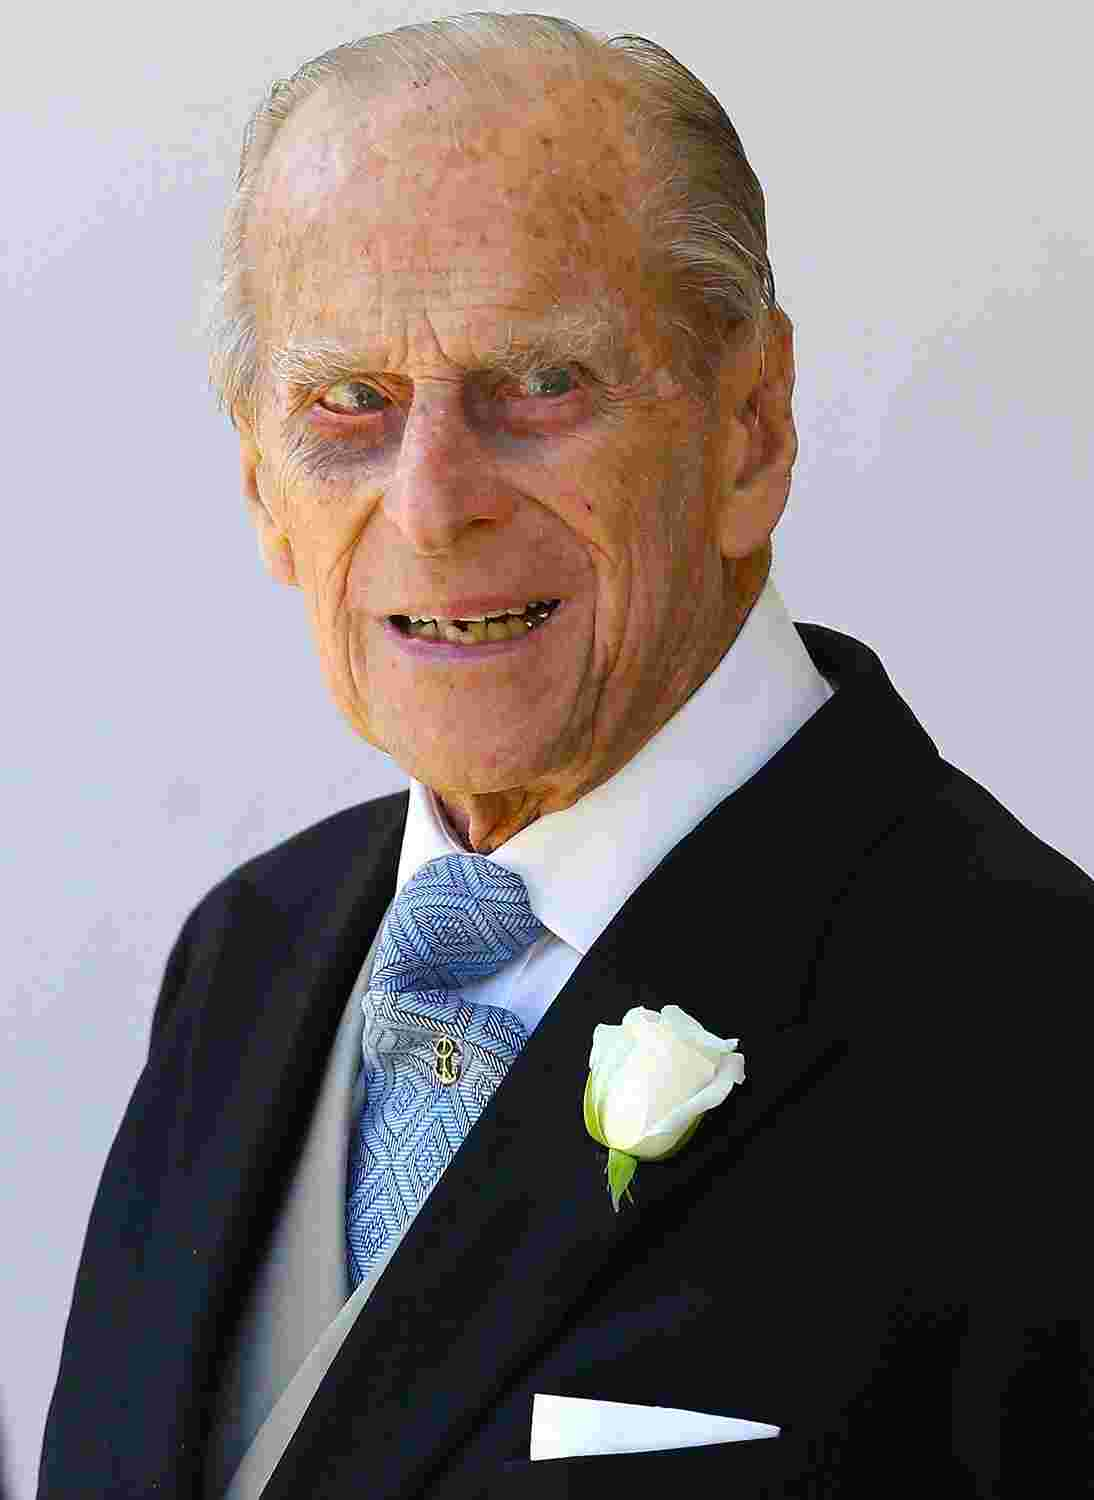 Queen Elizabeth's husband, Prince Philip hospitalized